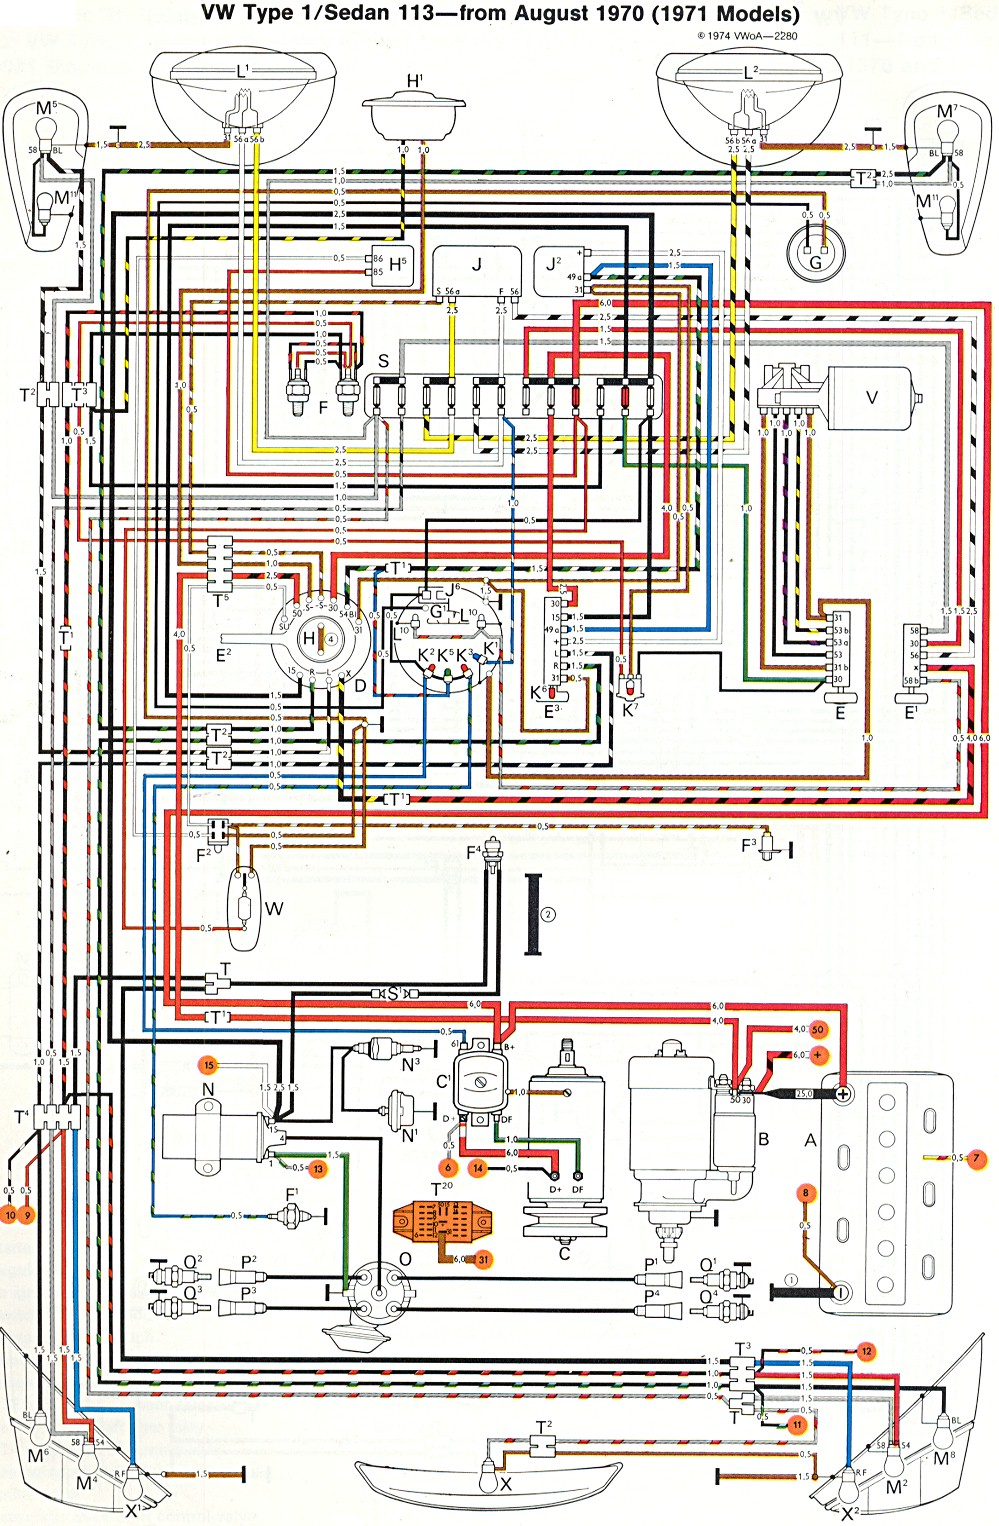 bug_super_71 1971 super beetle wiring diagram thegoldenbug com 1968 vw bug headlight wiring diagram at soozxer.org